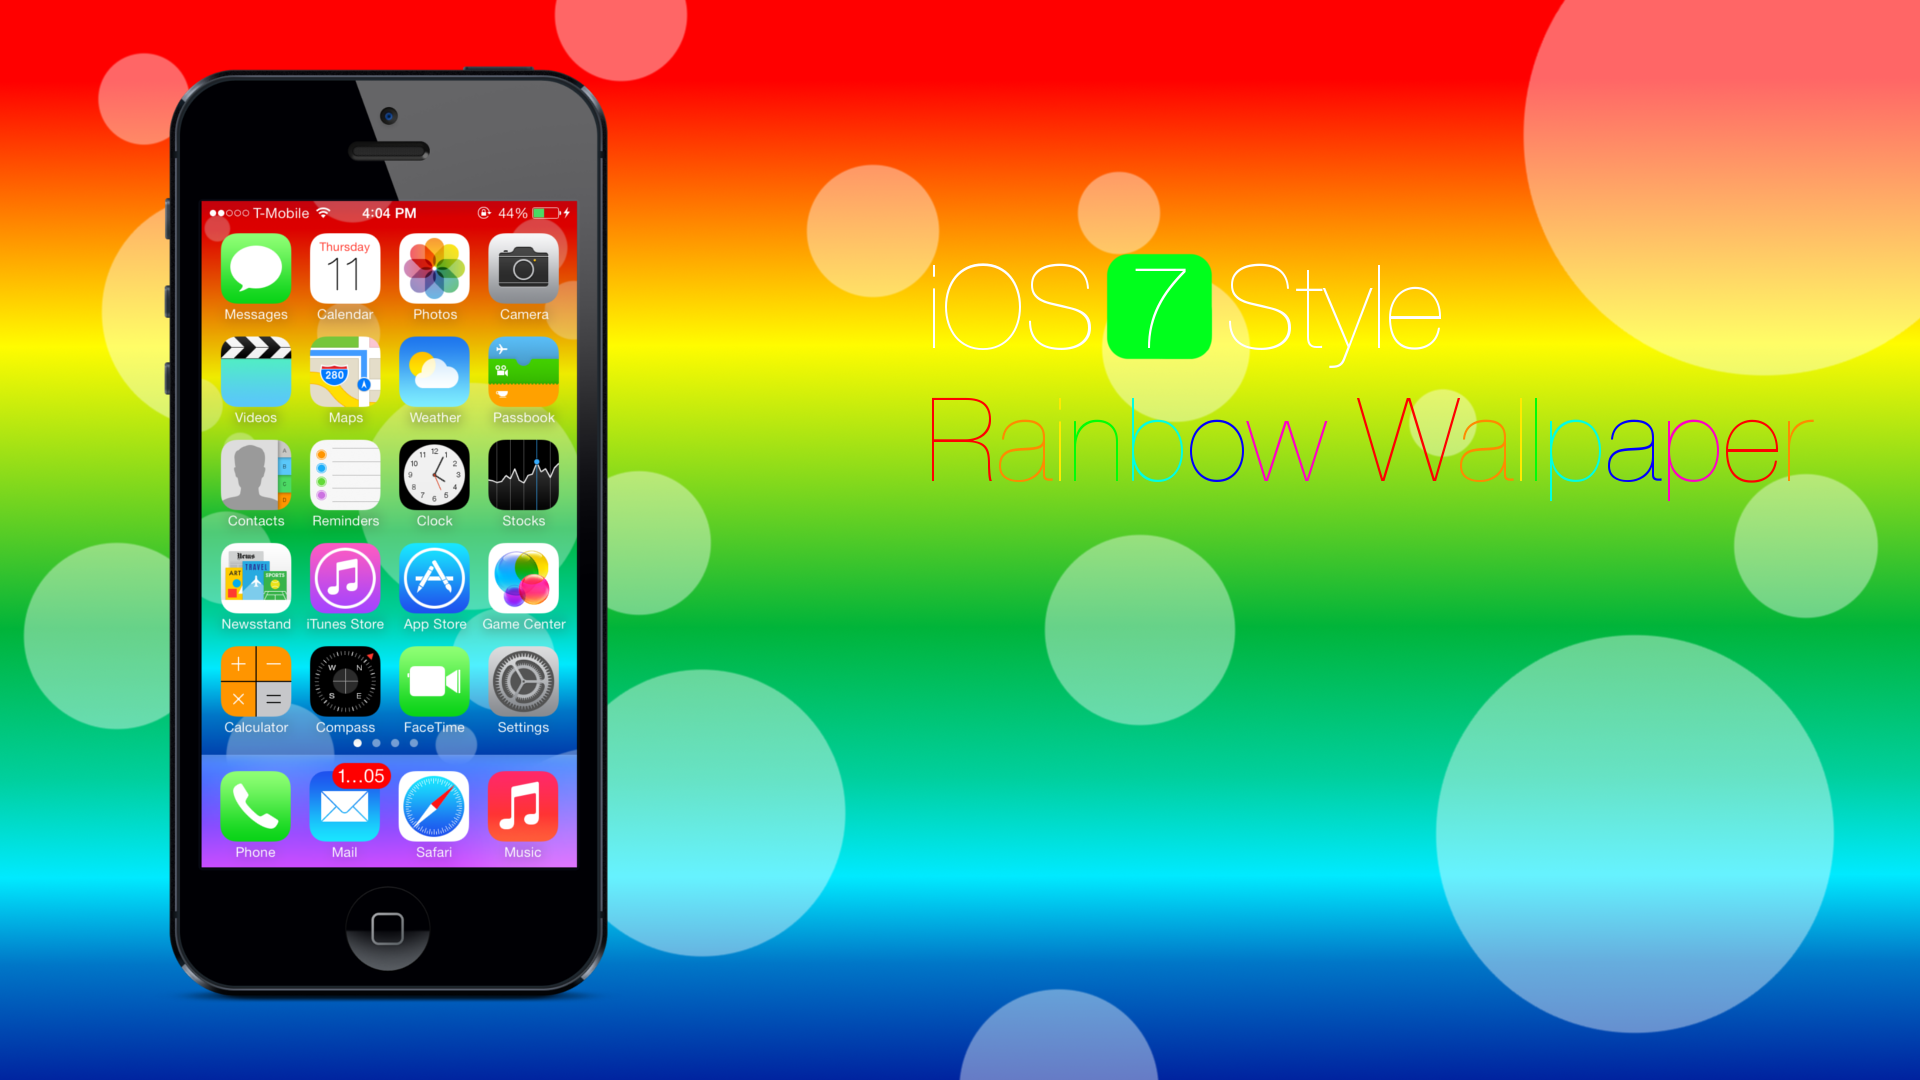 Ios 7 Style Rainbow Wallpaper Desktop Background 1920x1080